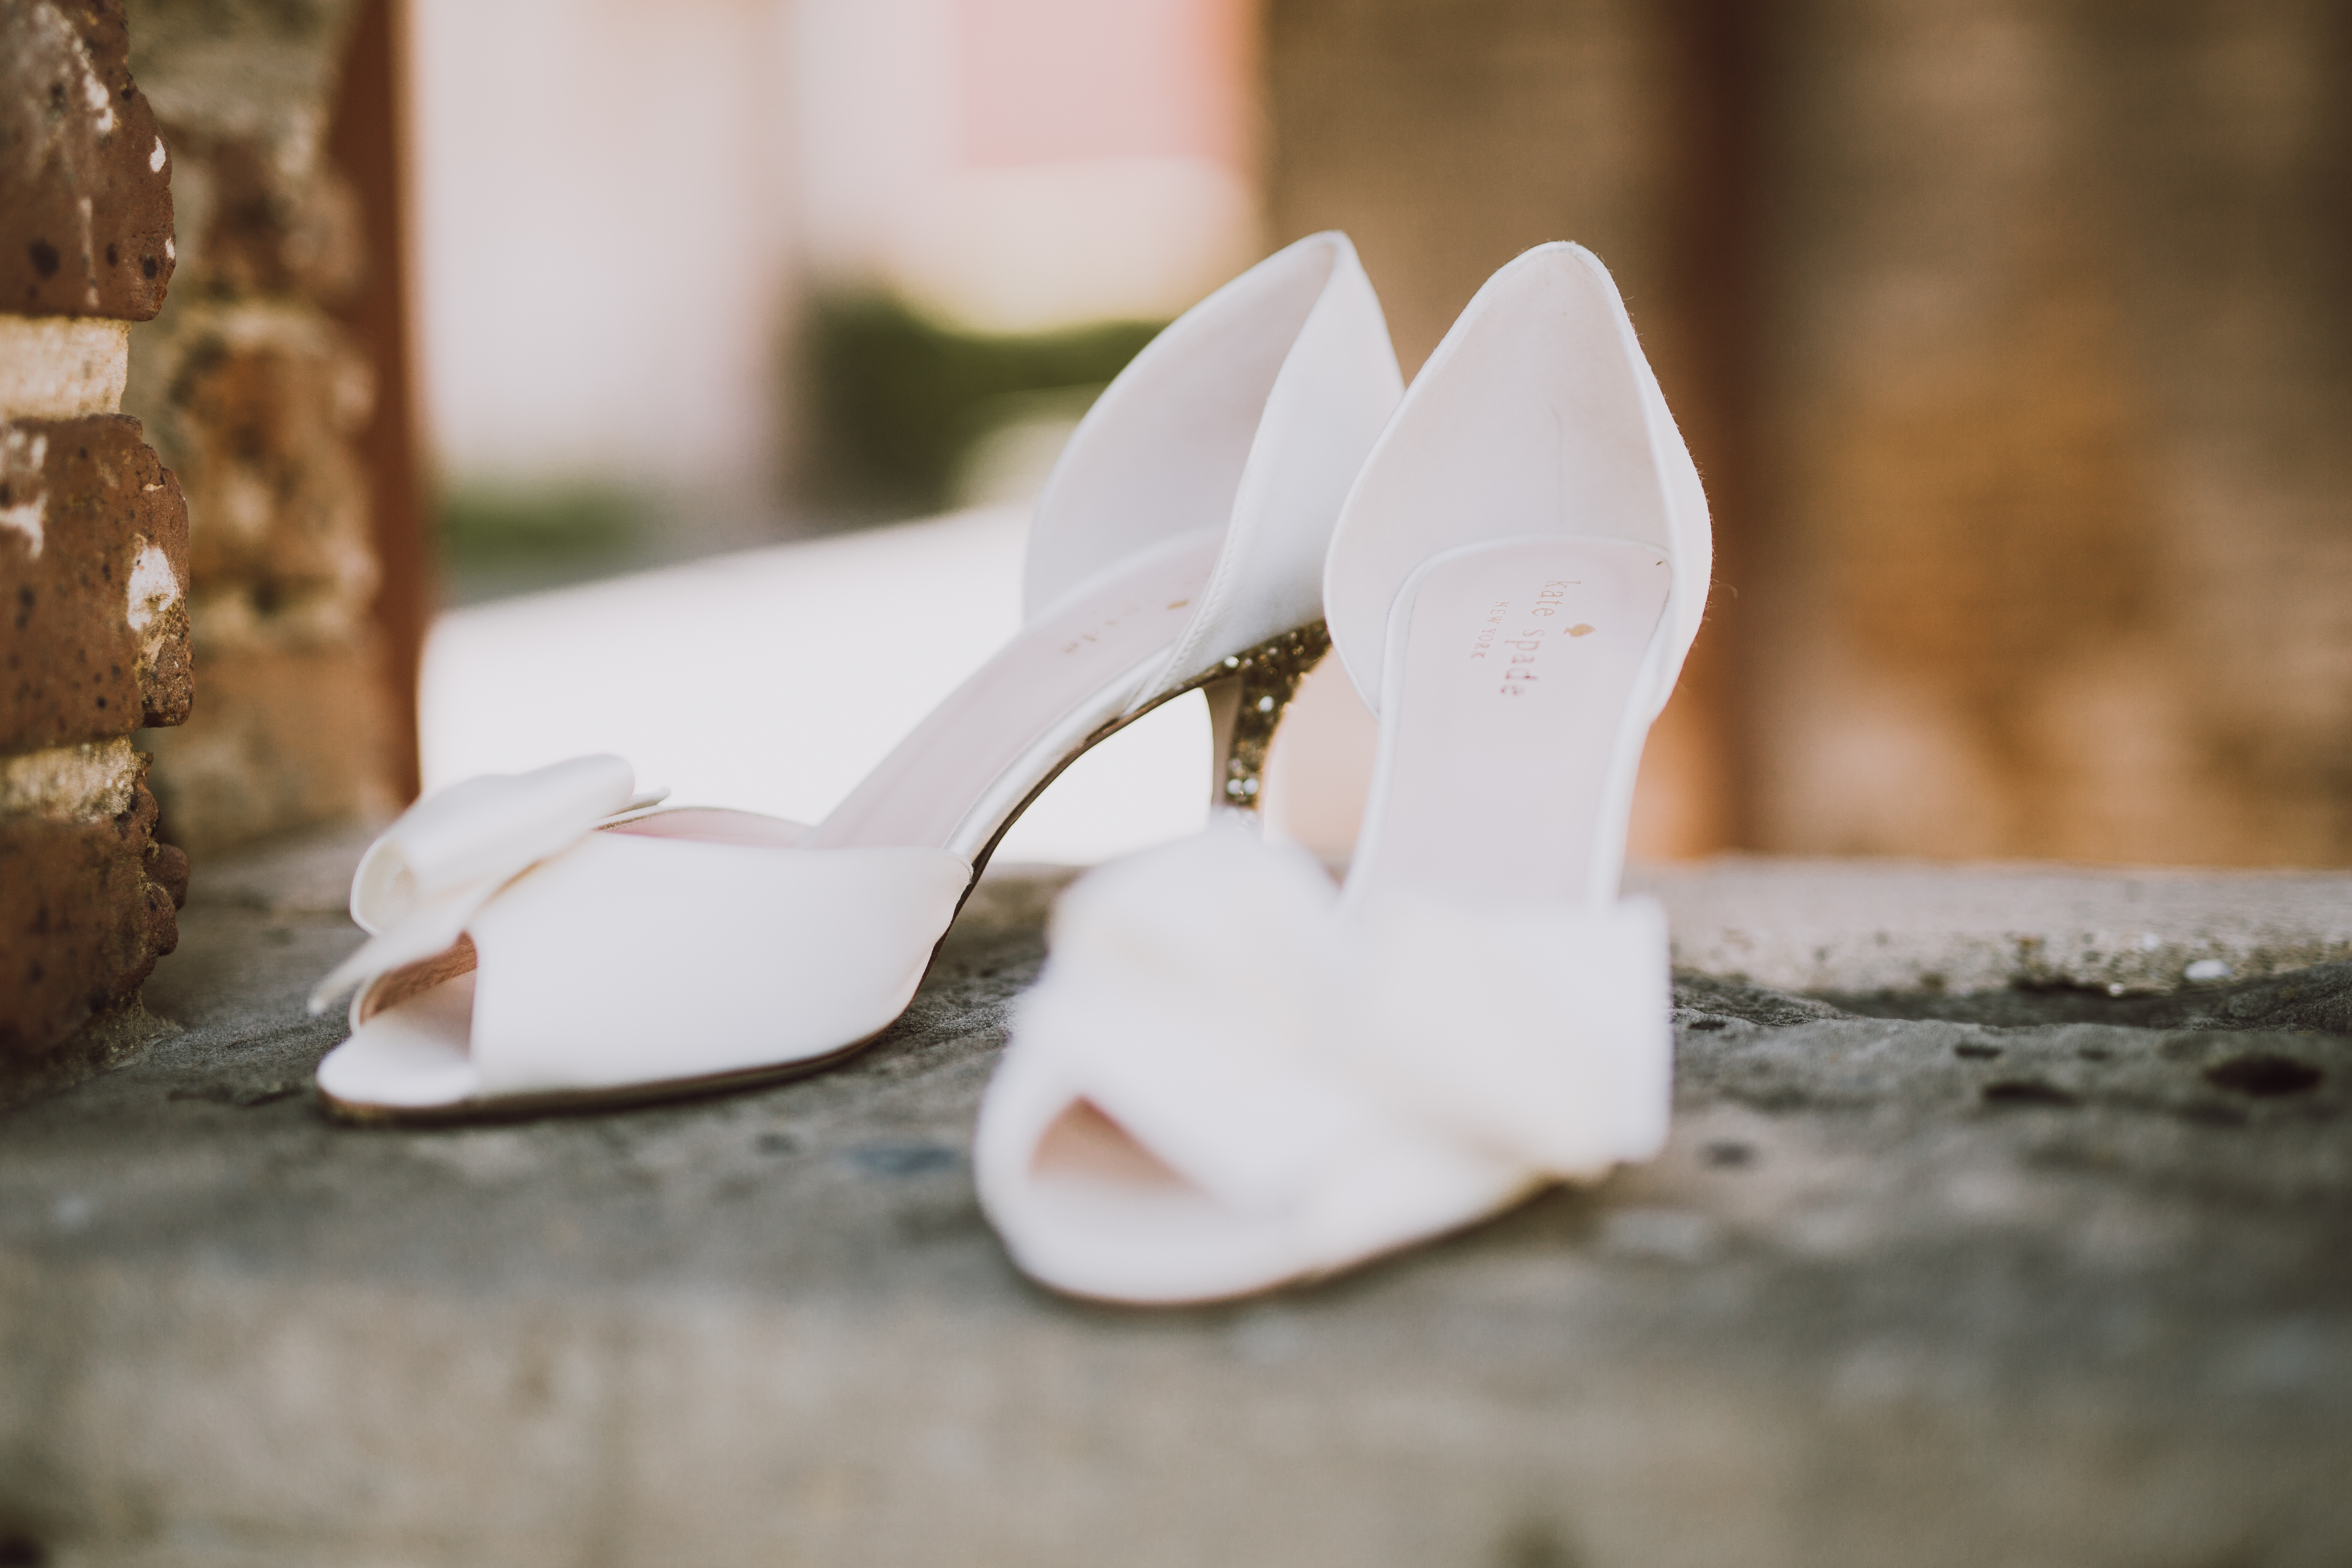 Wedding Shoes and Bridesmaids Shoes - Thrifty Pineapple